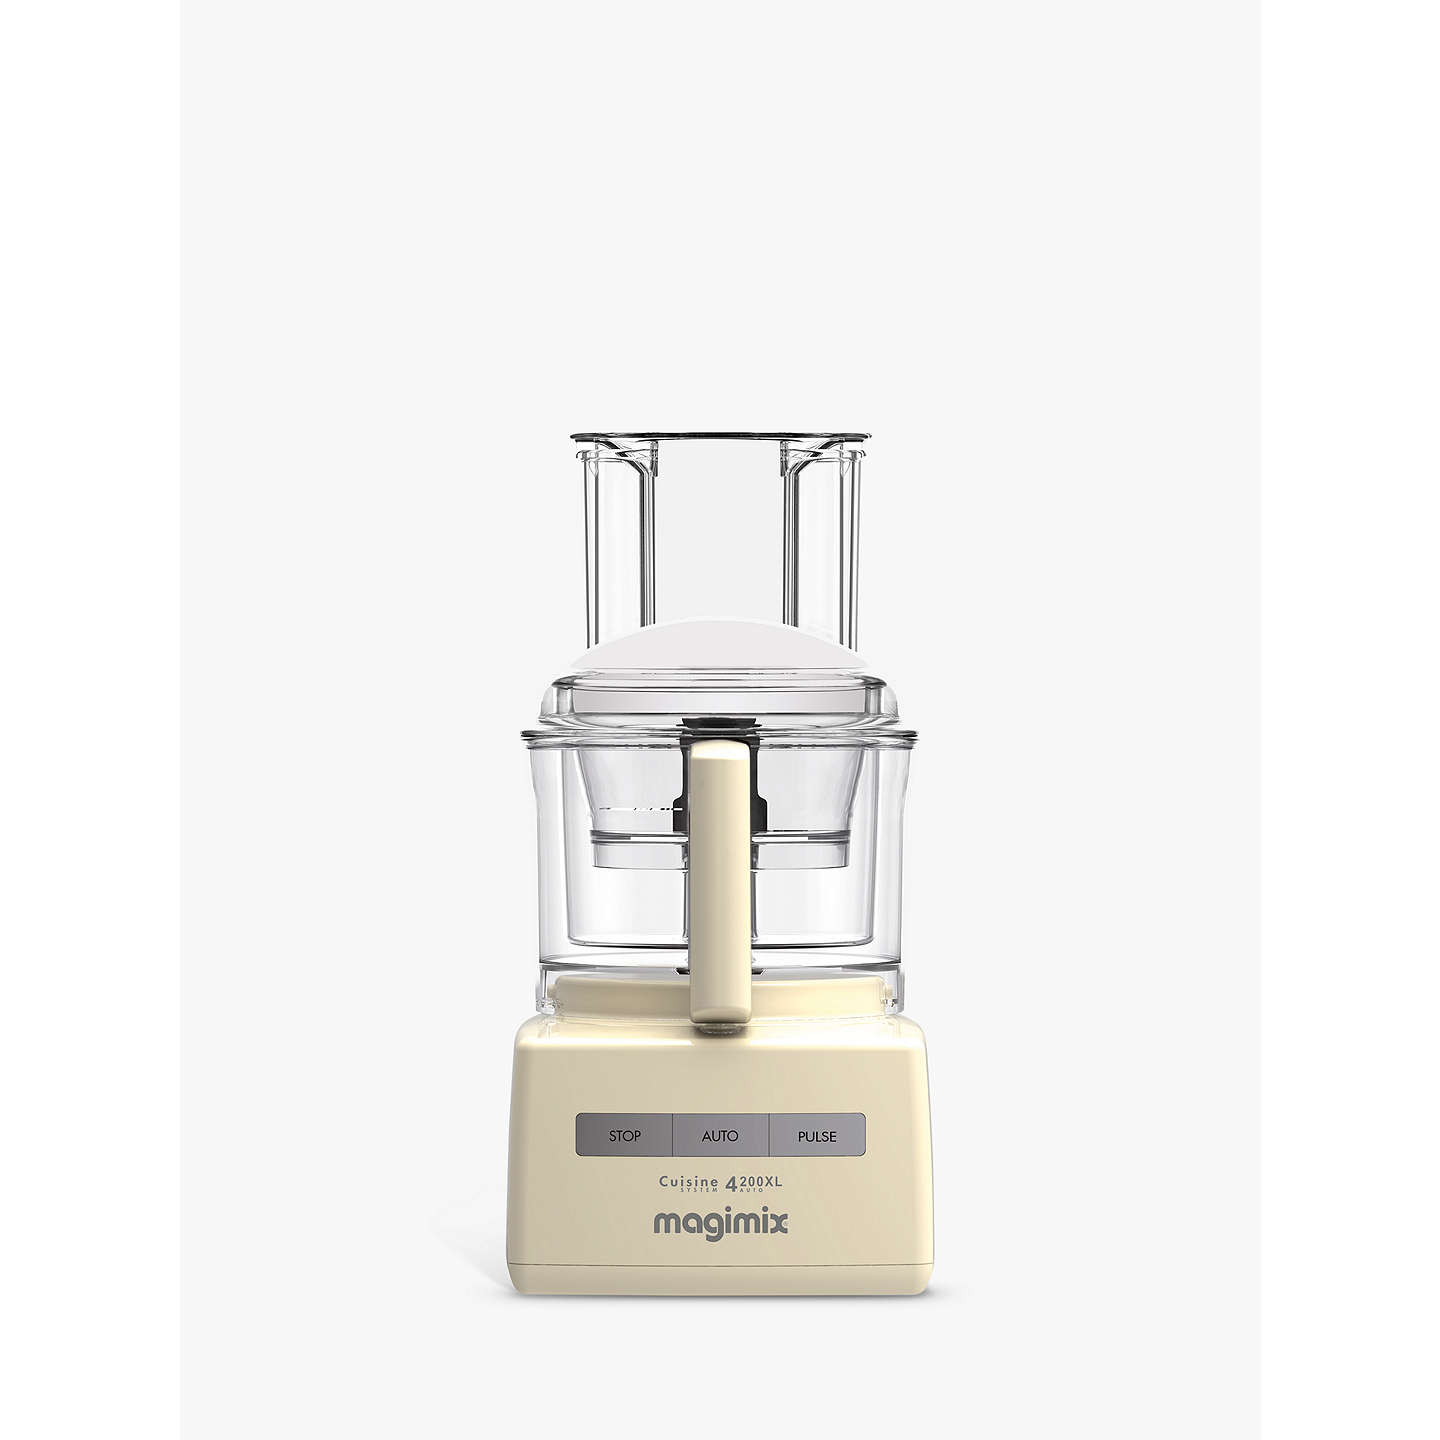 Magimix 4200xl blendermix food processor at john lewis buymagimix 4200xl 18475uk blendermix food processor cream online at johnlewis forumfinder Image collections